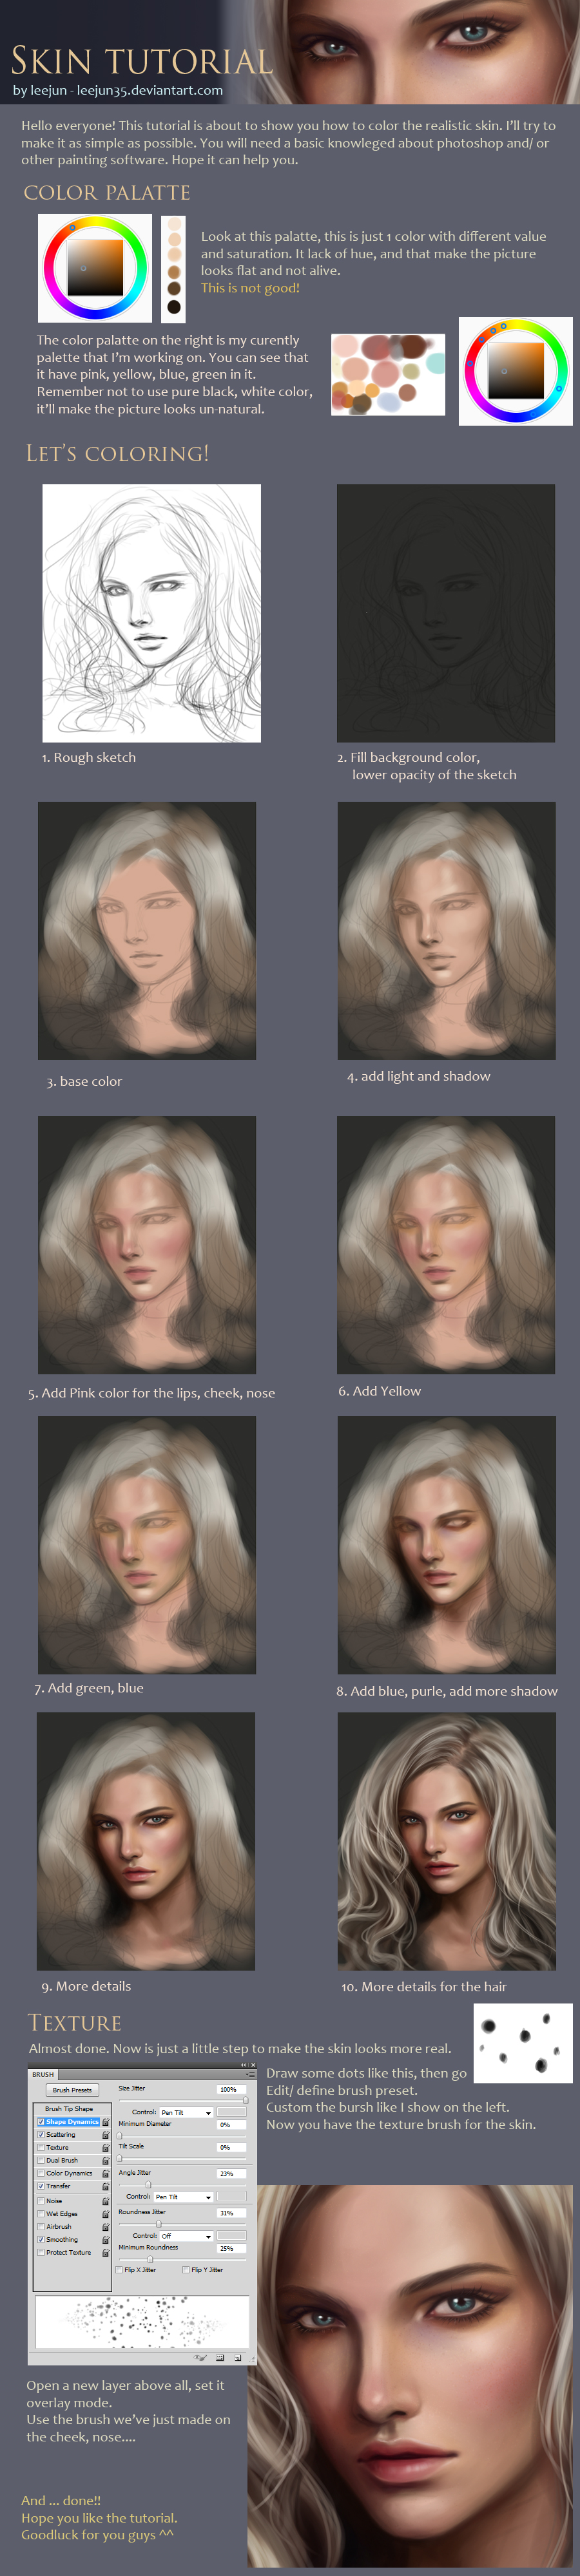 skin tutorial by leejun35